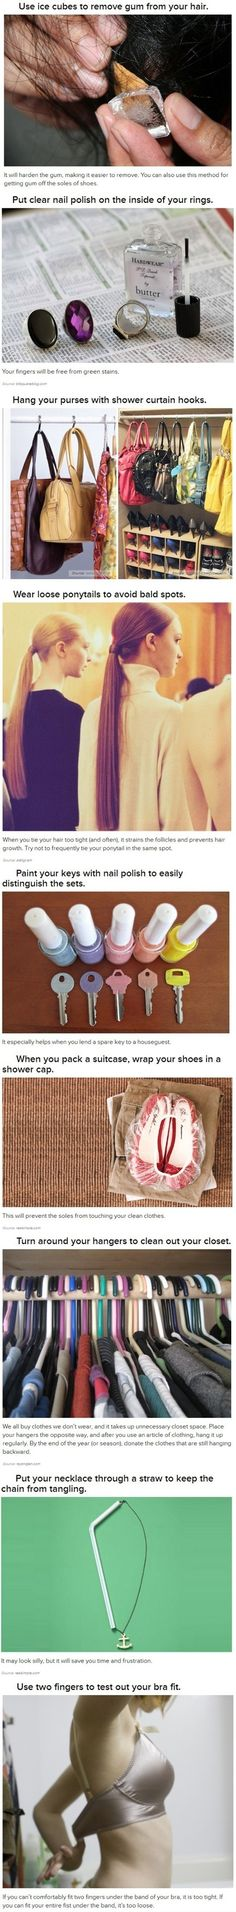 Life hacks for girls // funny pictures - funny photos - funny images - funny pics - funny quotes - #lol #humor #funnypictures